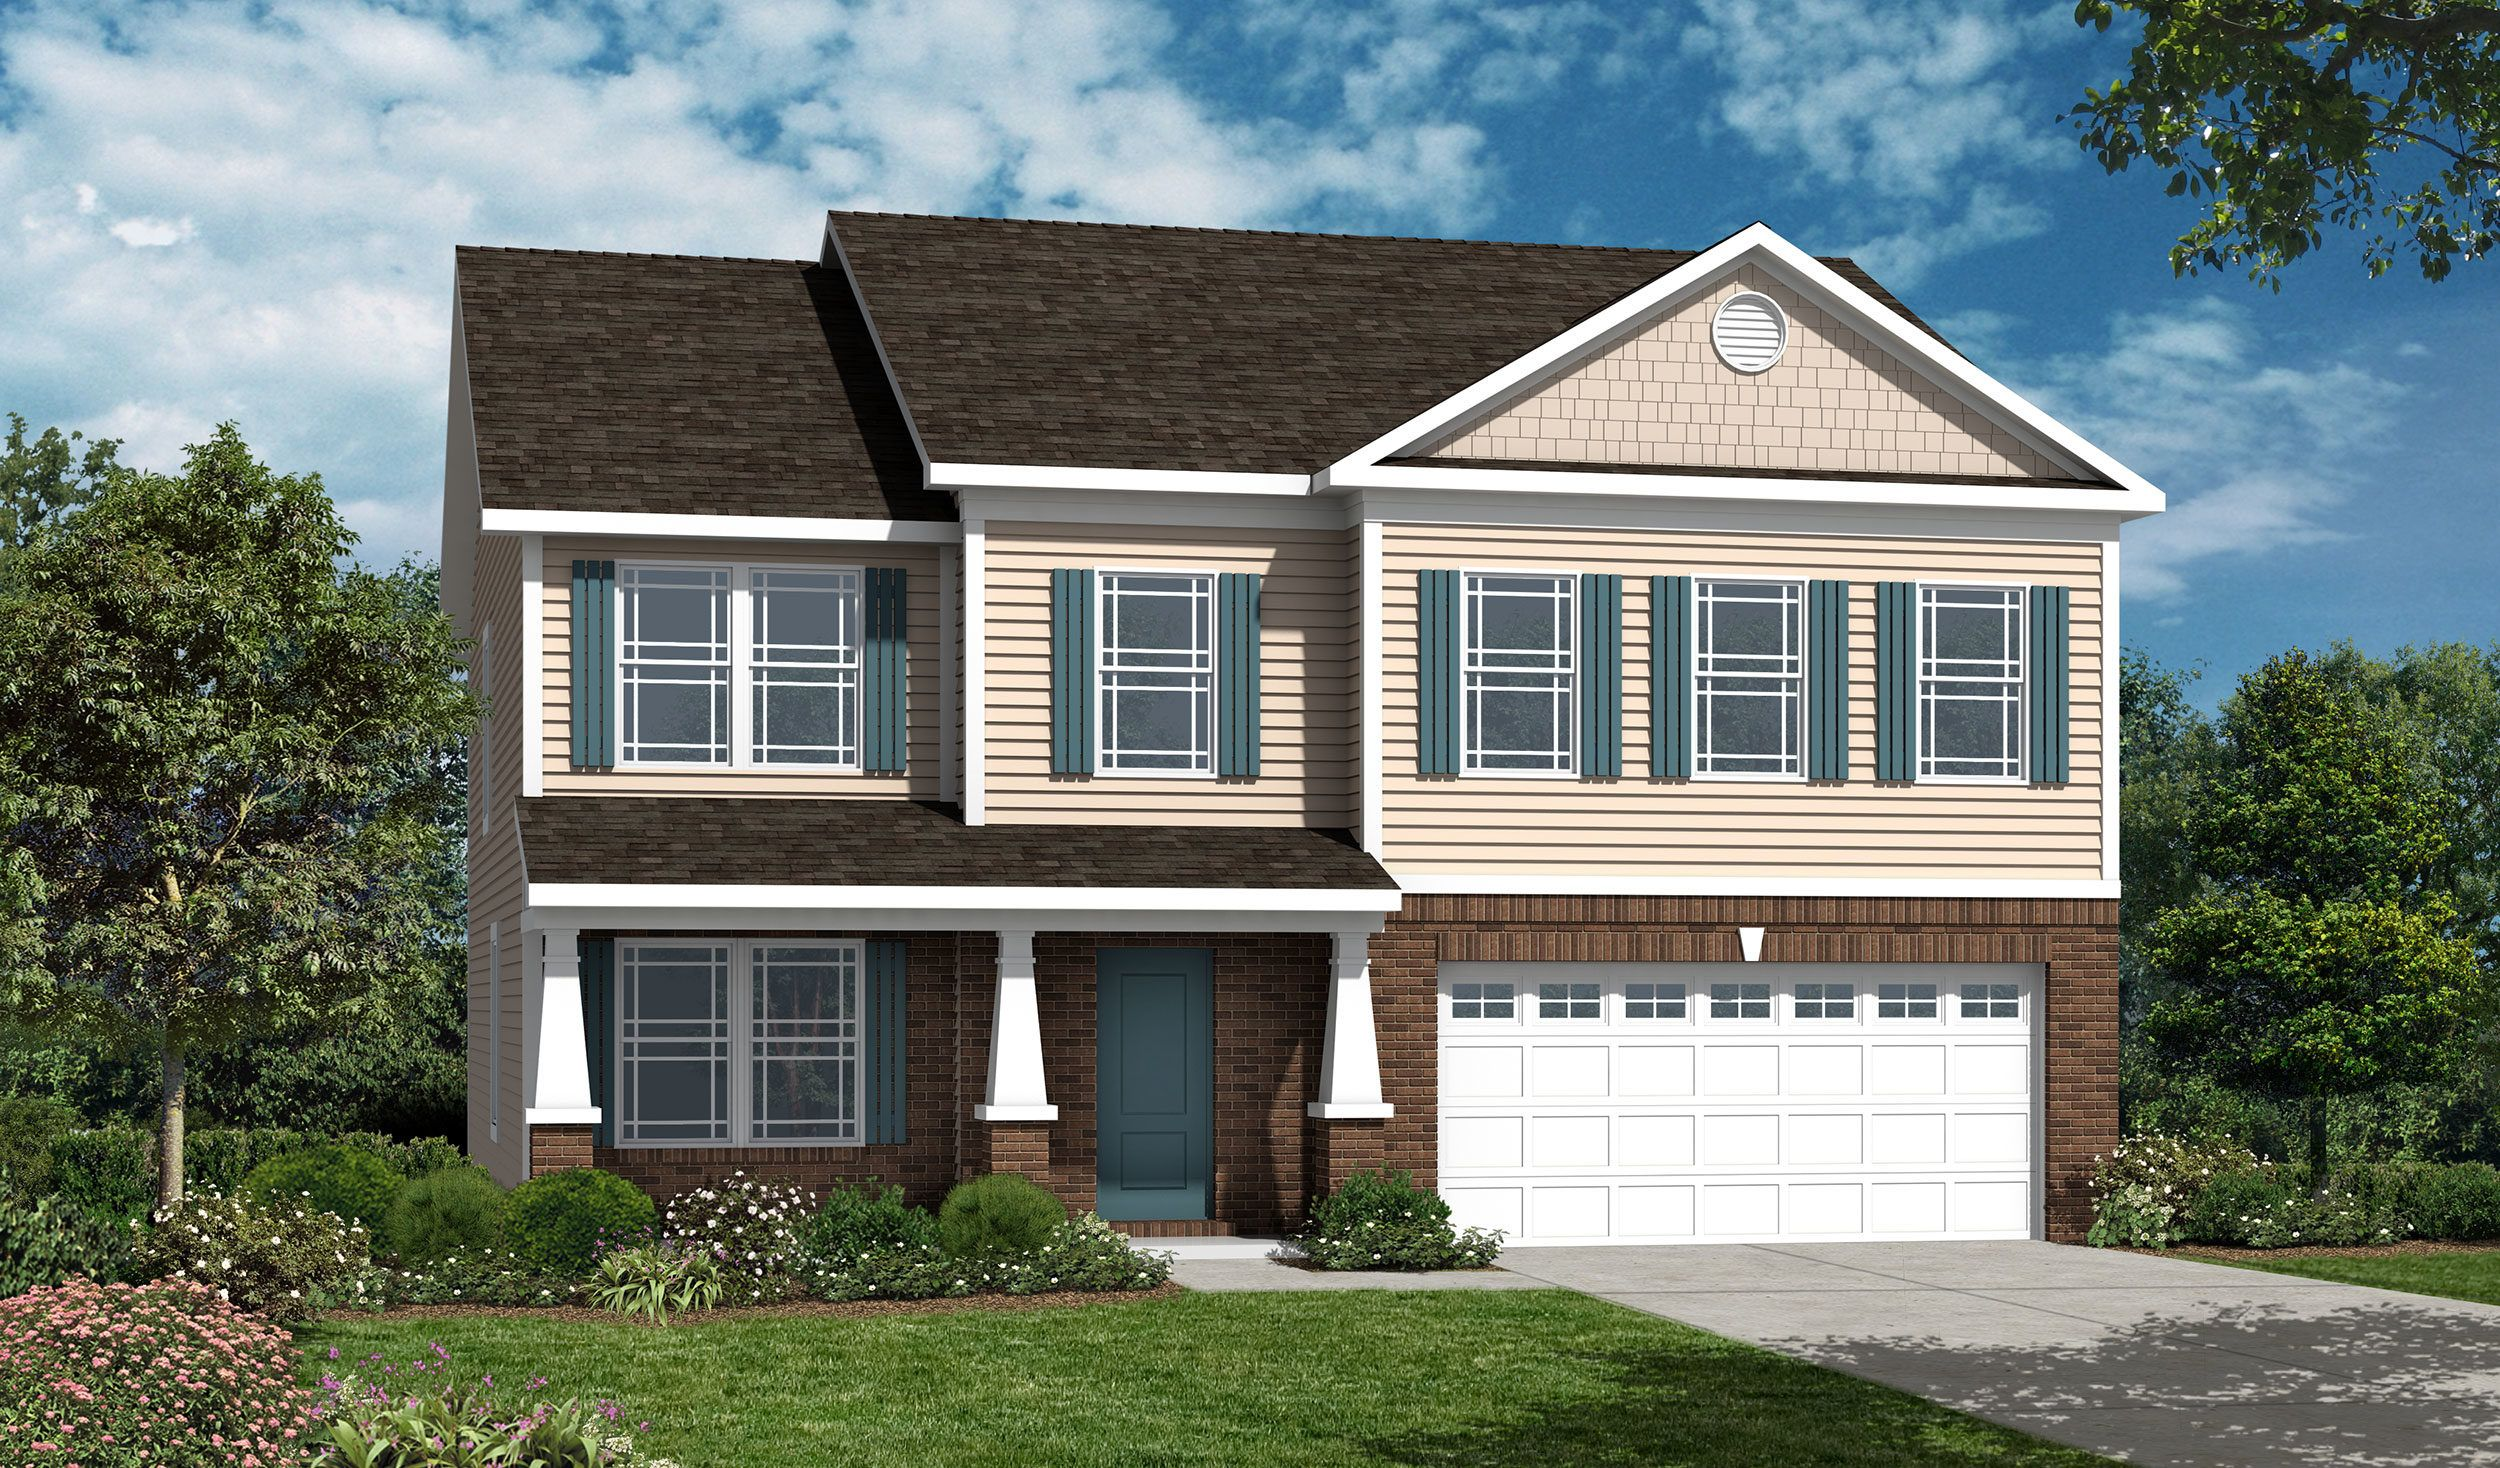 Westport homes of indianapolis sawmill westchester for Houses for sale westport